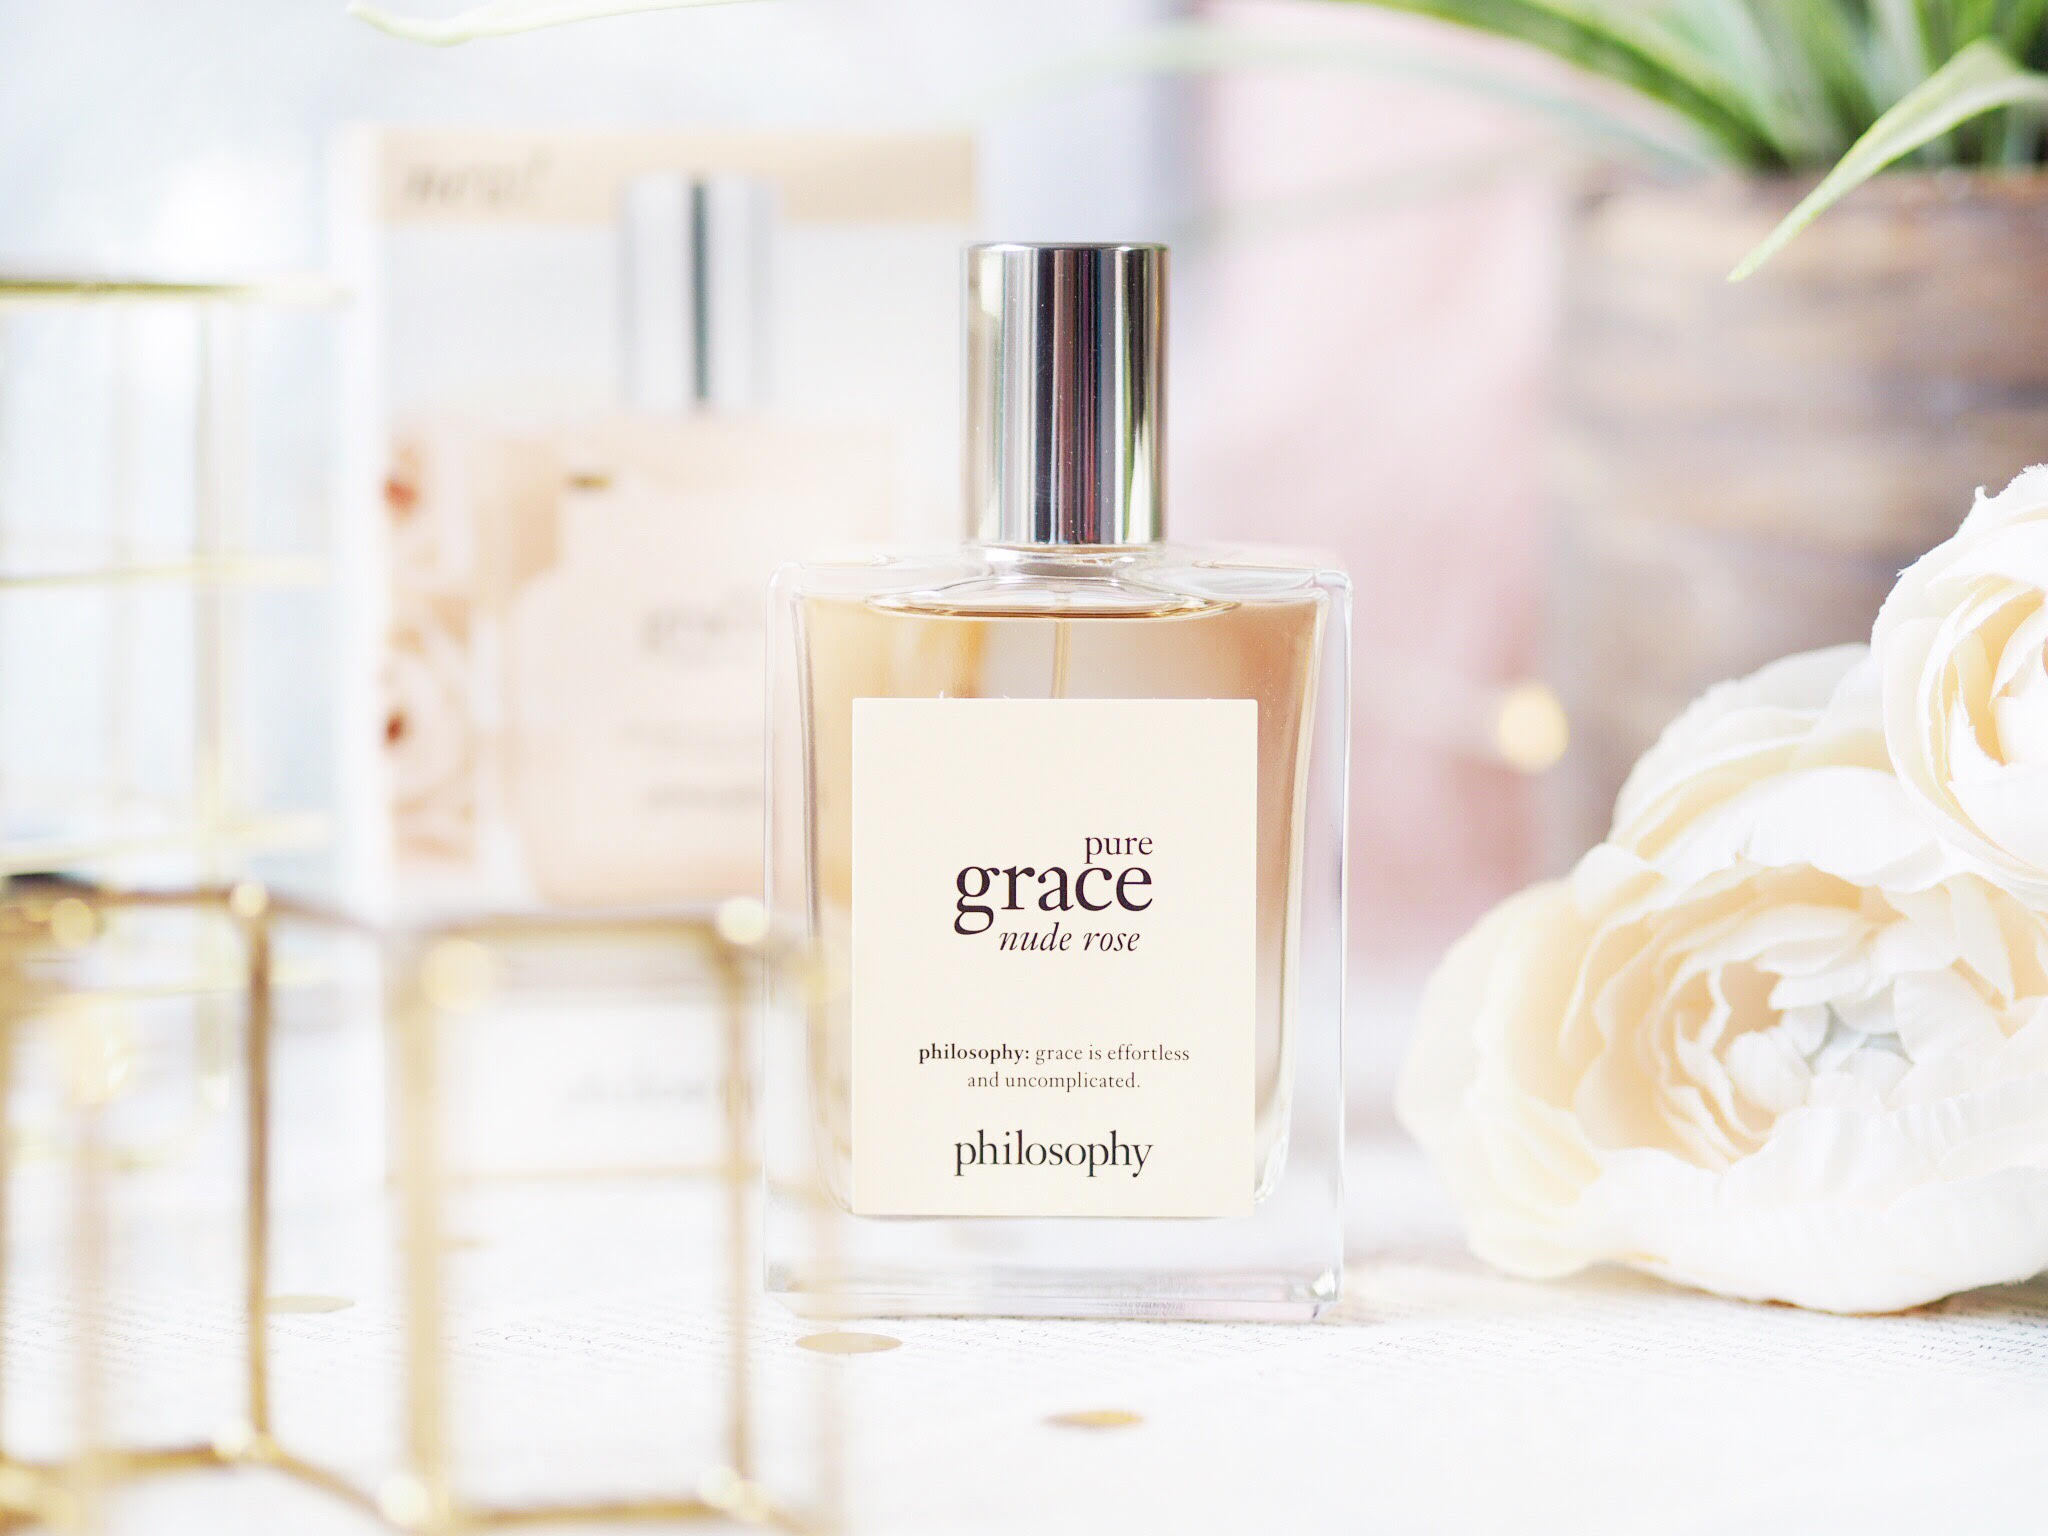 Philosophy Pure Grace Nude Rose.